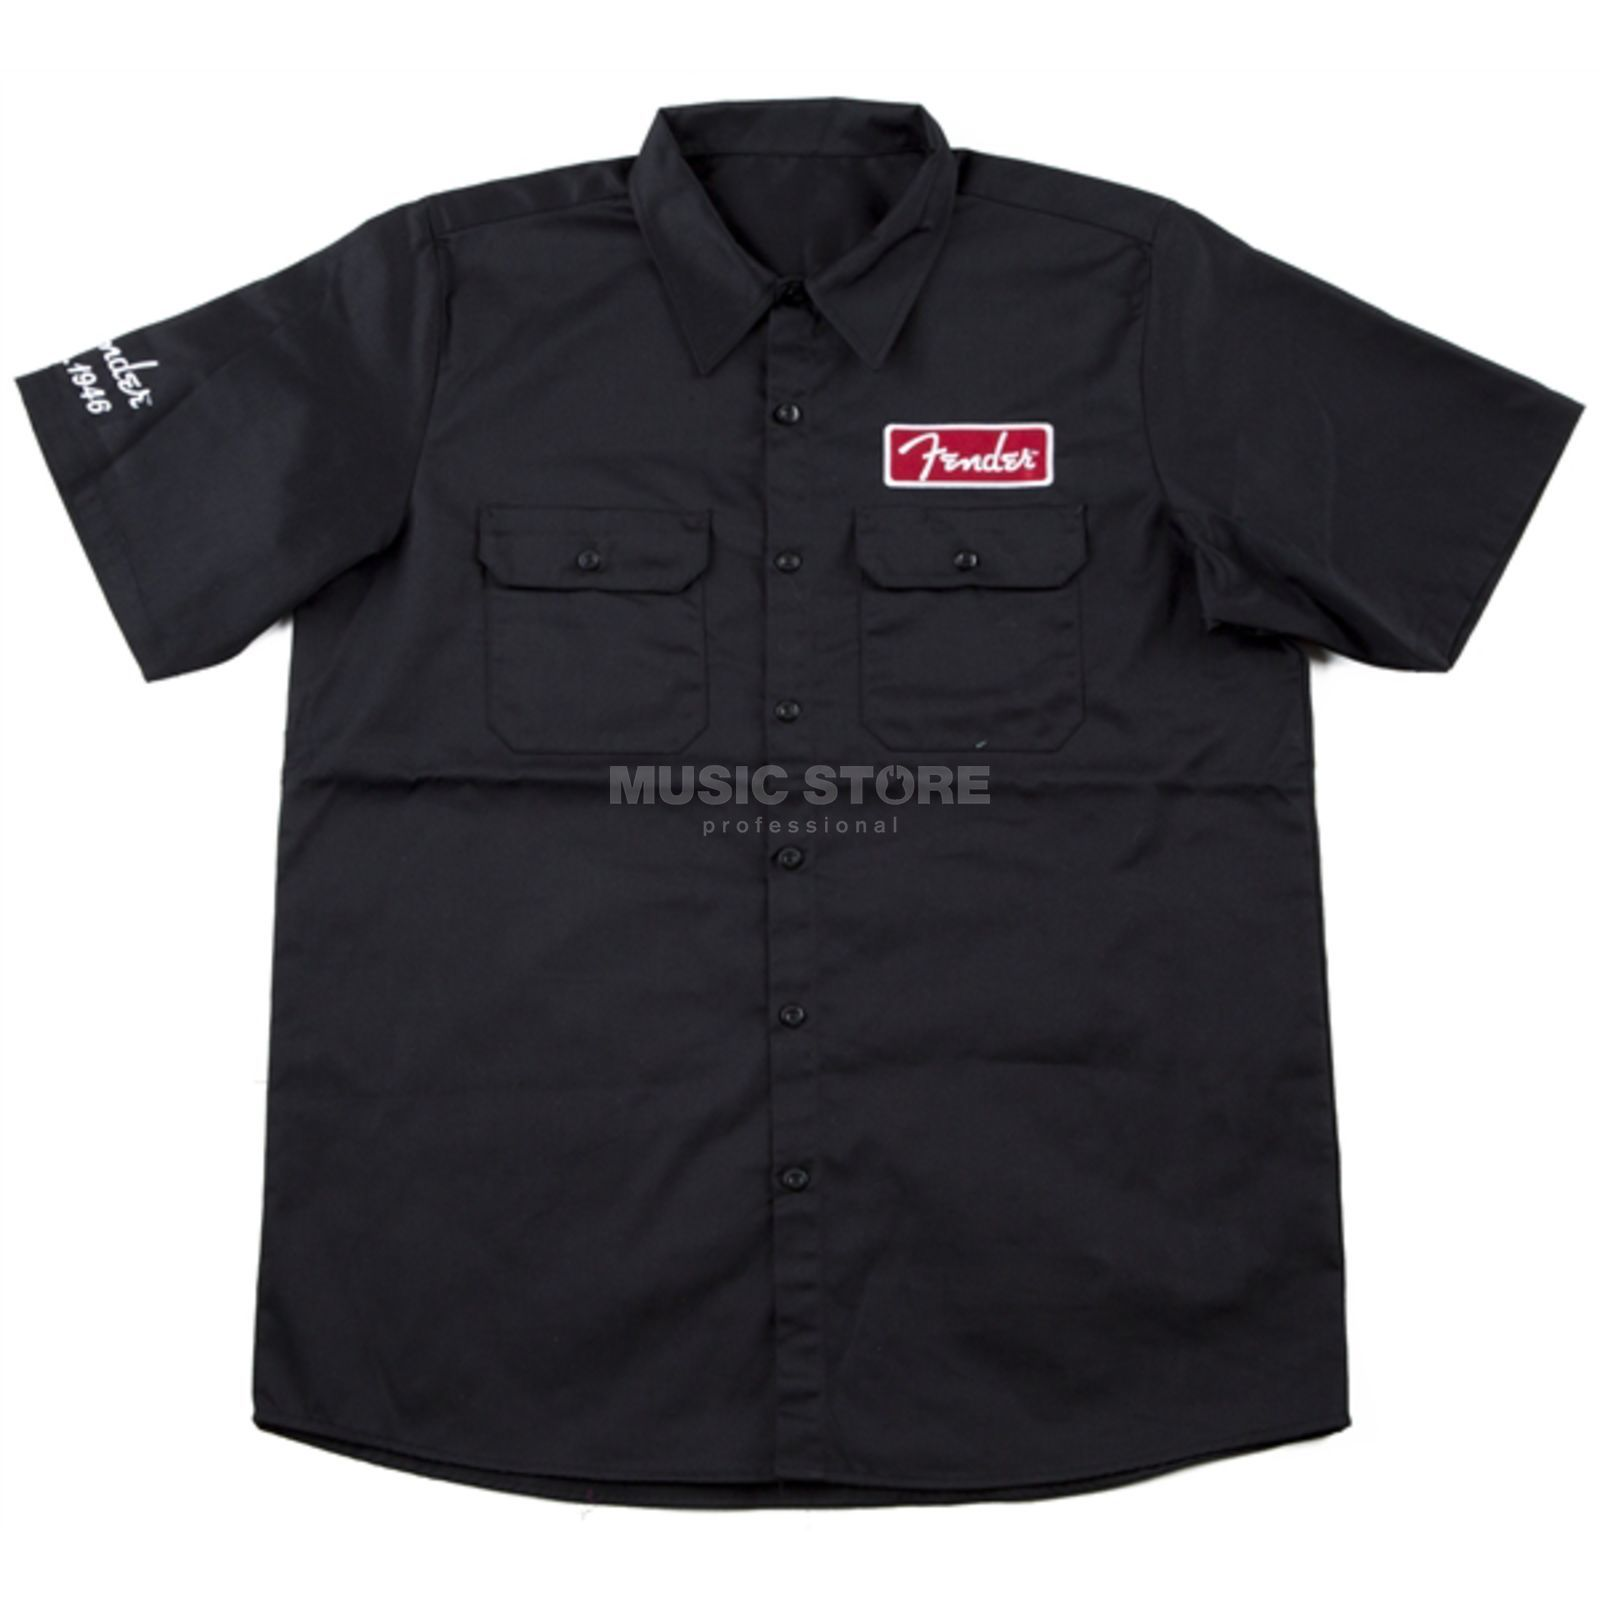 Fender Workshirt S Black Product Image